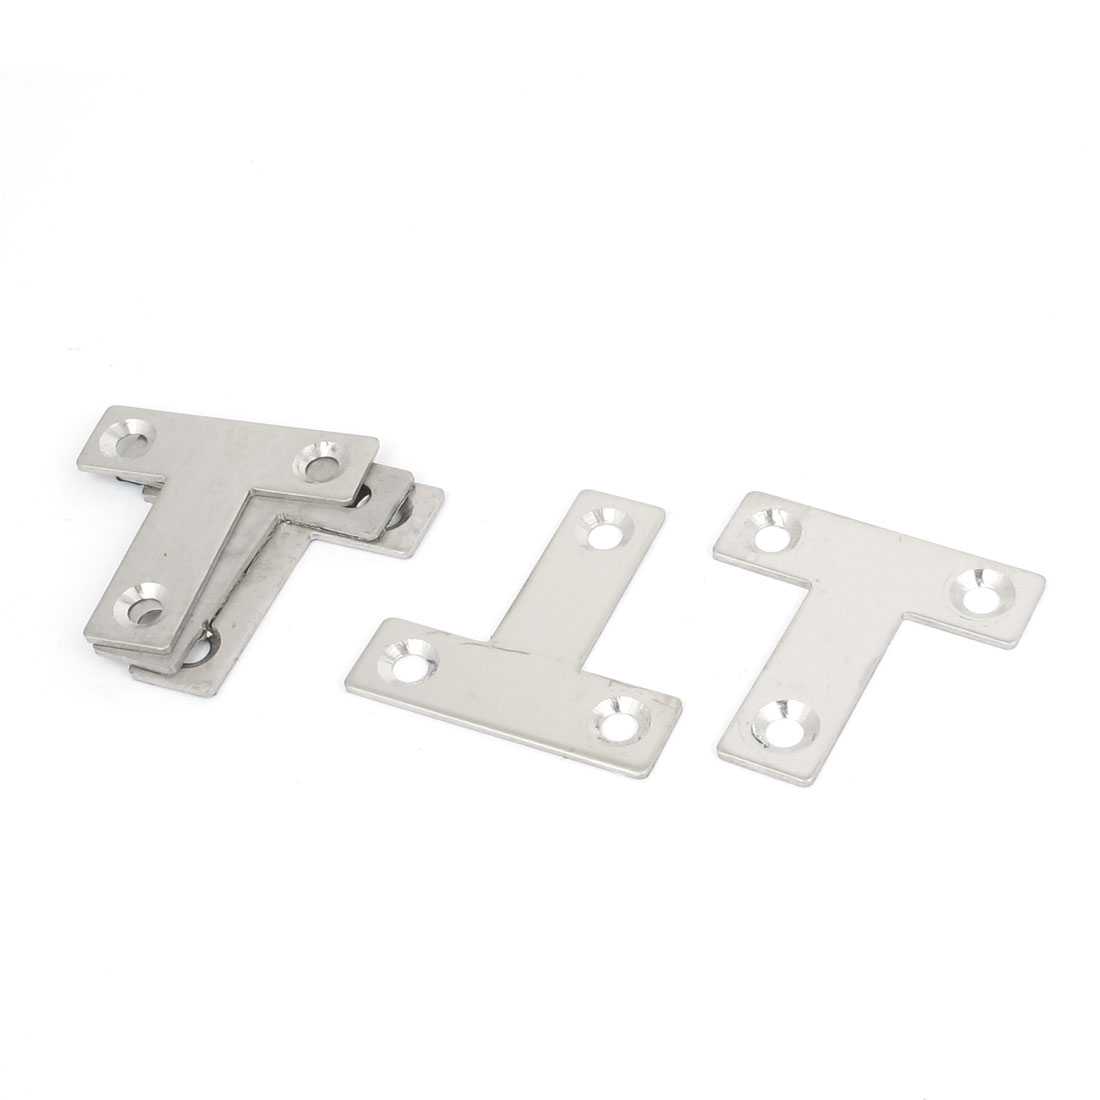 40mmx40mm Flat T Shape Angle Plate Corner Brace Repair Bracket 5PCS